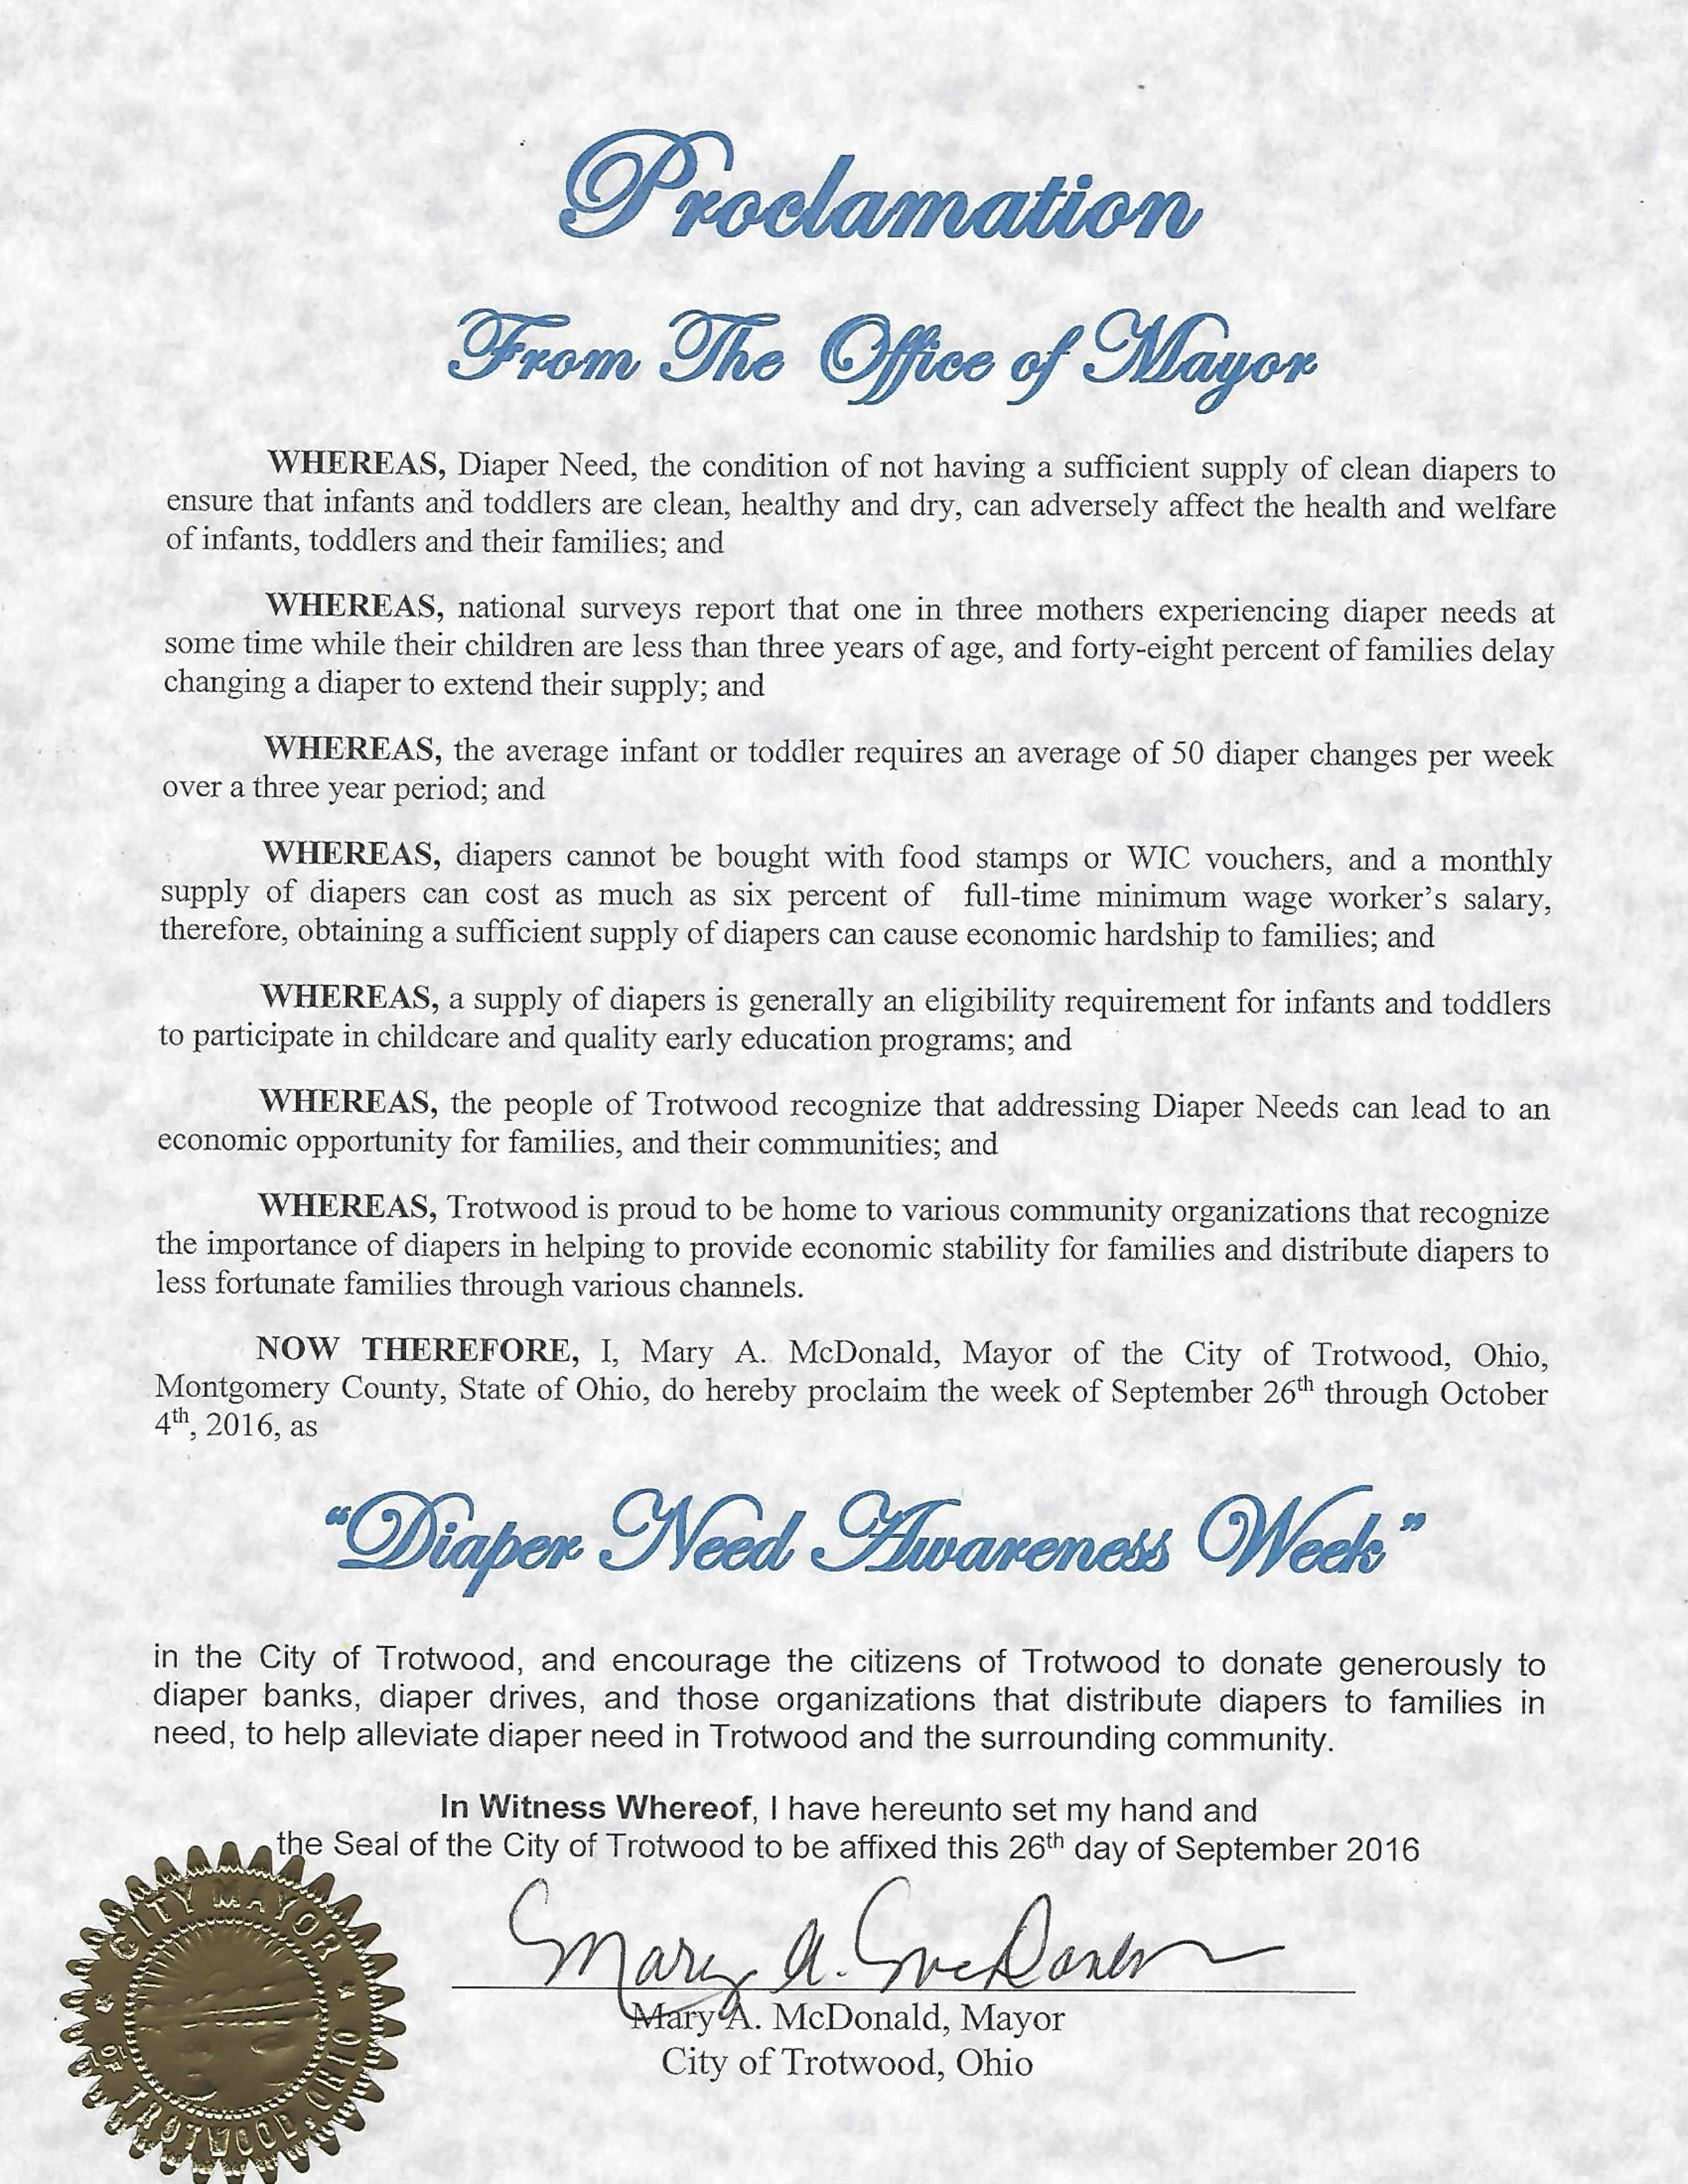 TROTWOOD, OH - Mayoral proclamation recognizing Diaper Need Awareness Week (Sep. 26 - Oct. 2, 2016) #diaperneed diaperneed.org